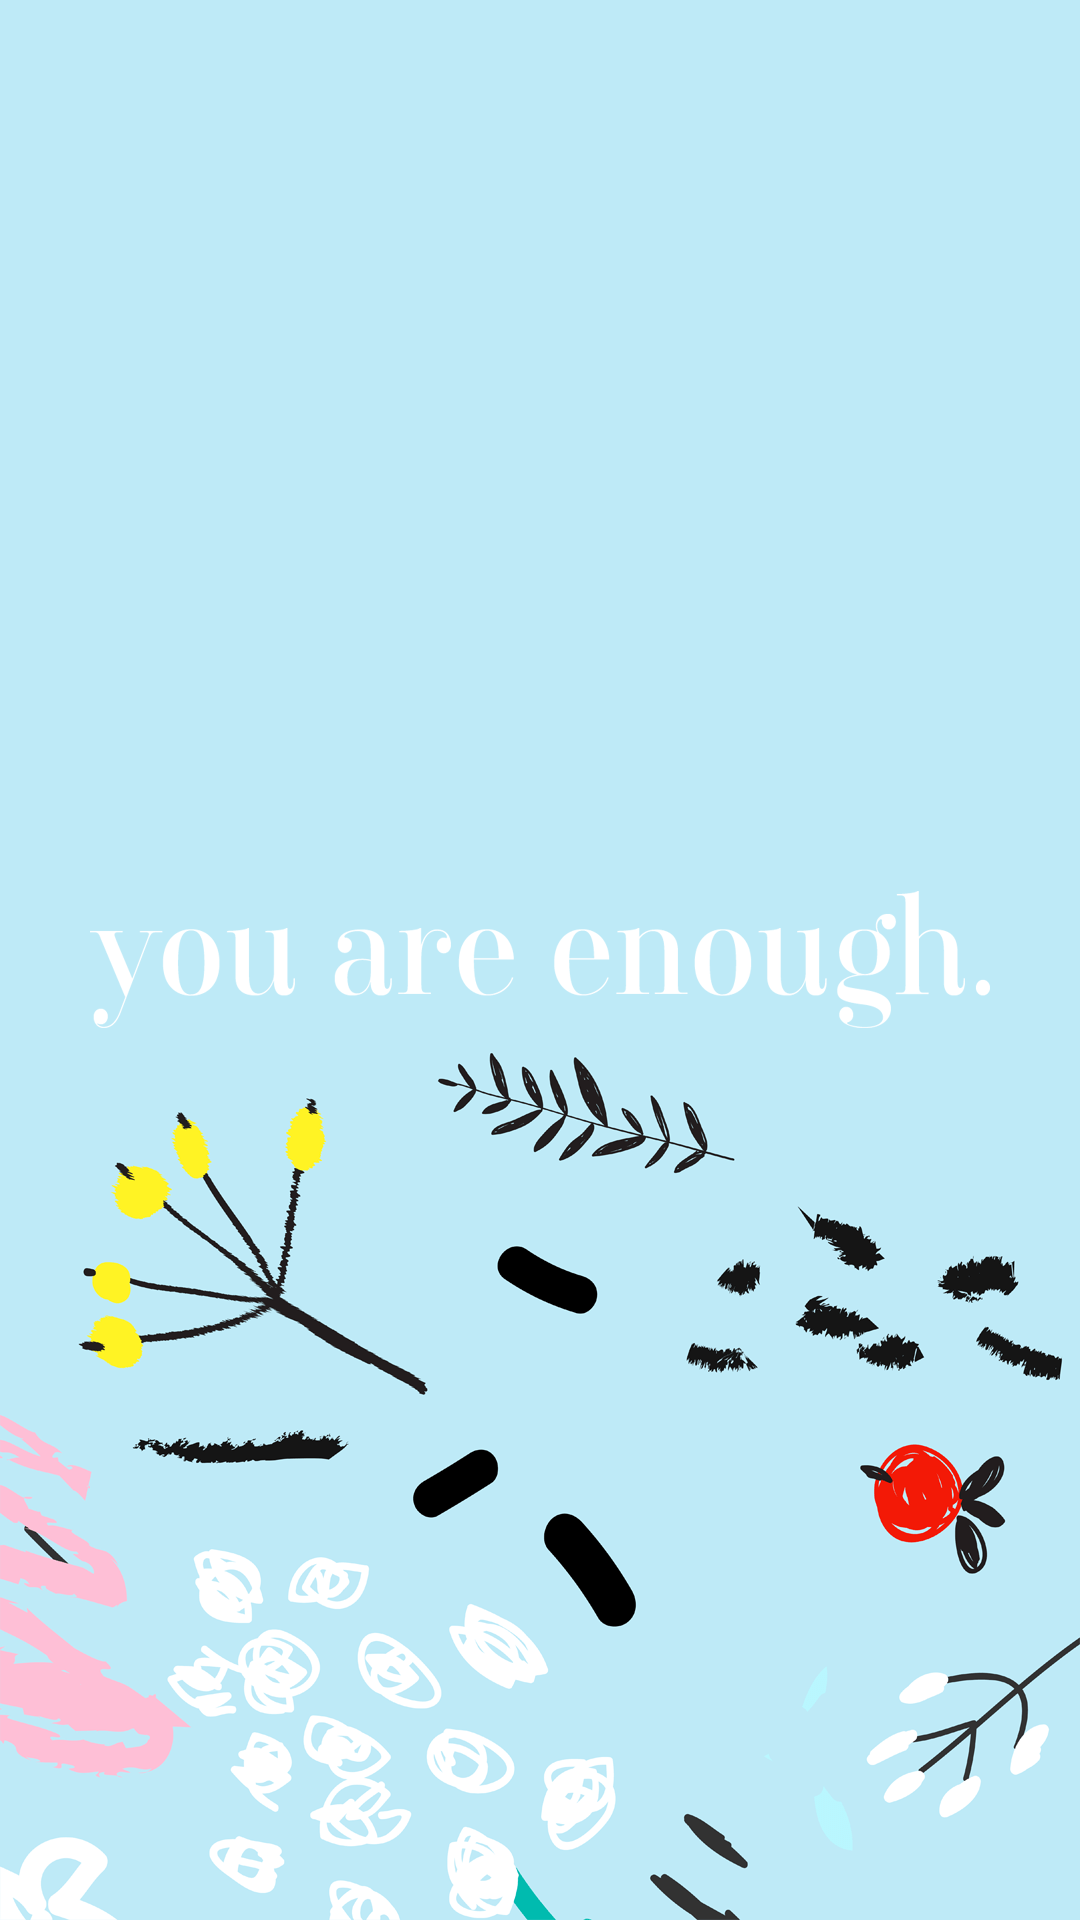 Iphone Wallpaper Book Quotes The Writing S On The Wall You Are Enough